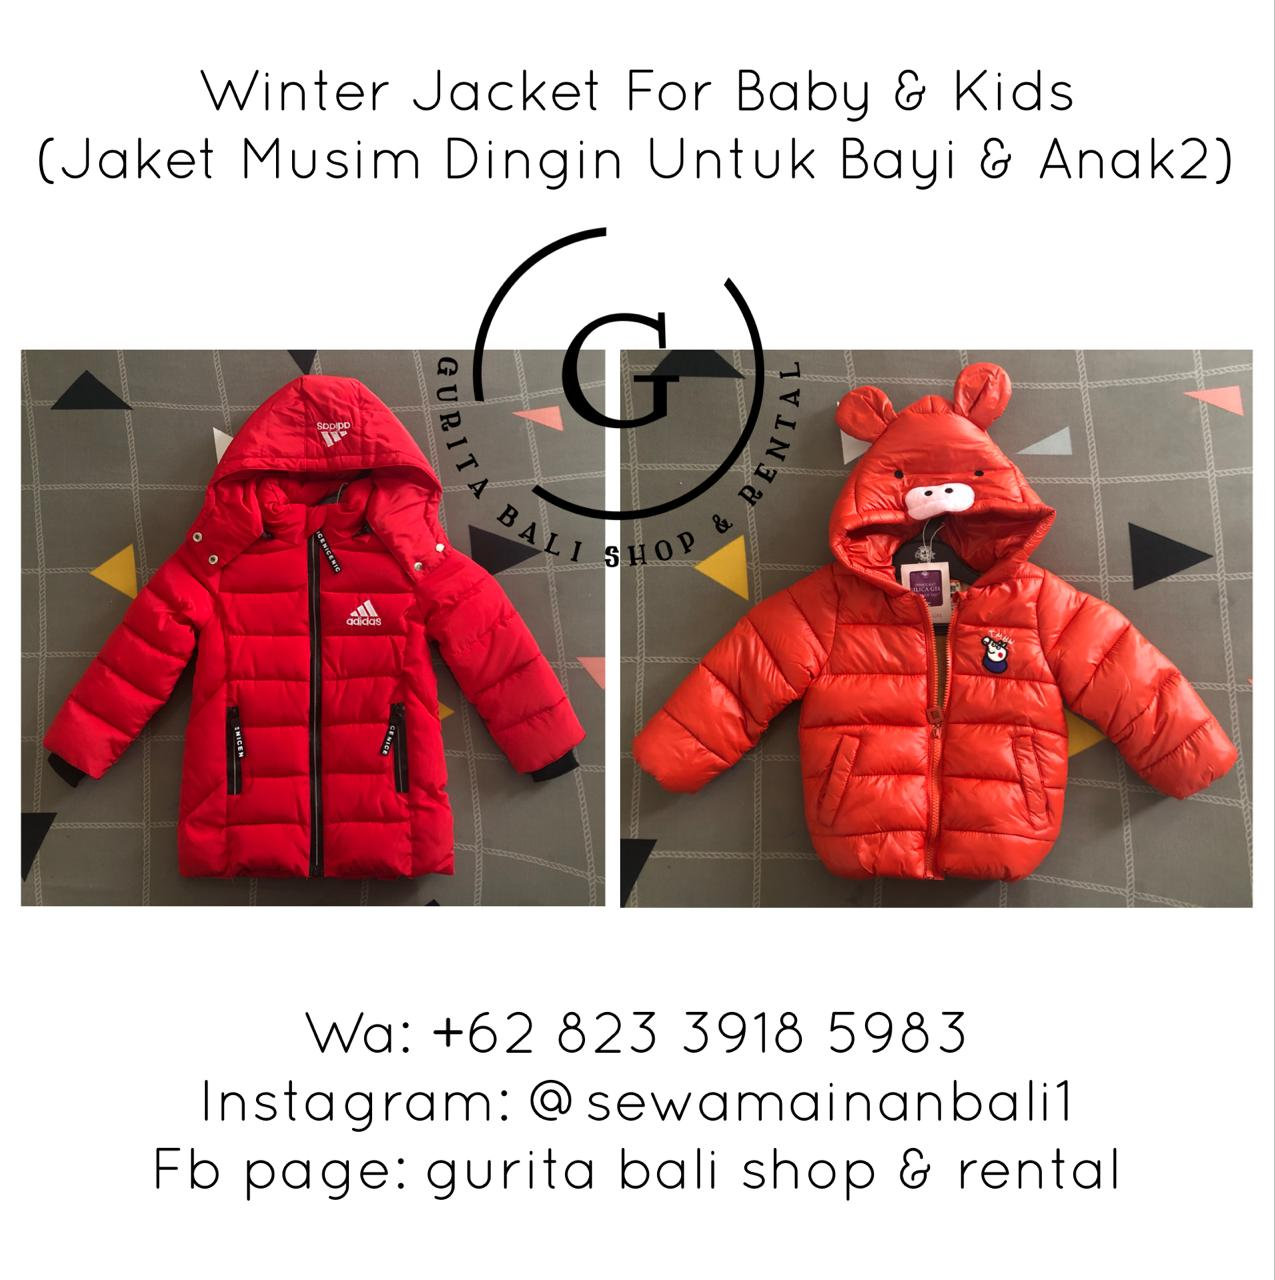 WINTER JACKET FOR BABY & KIDS SIZE S